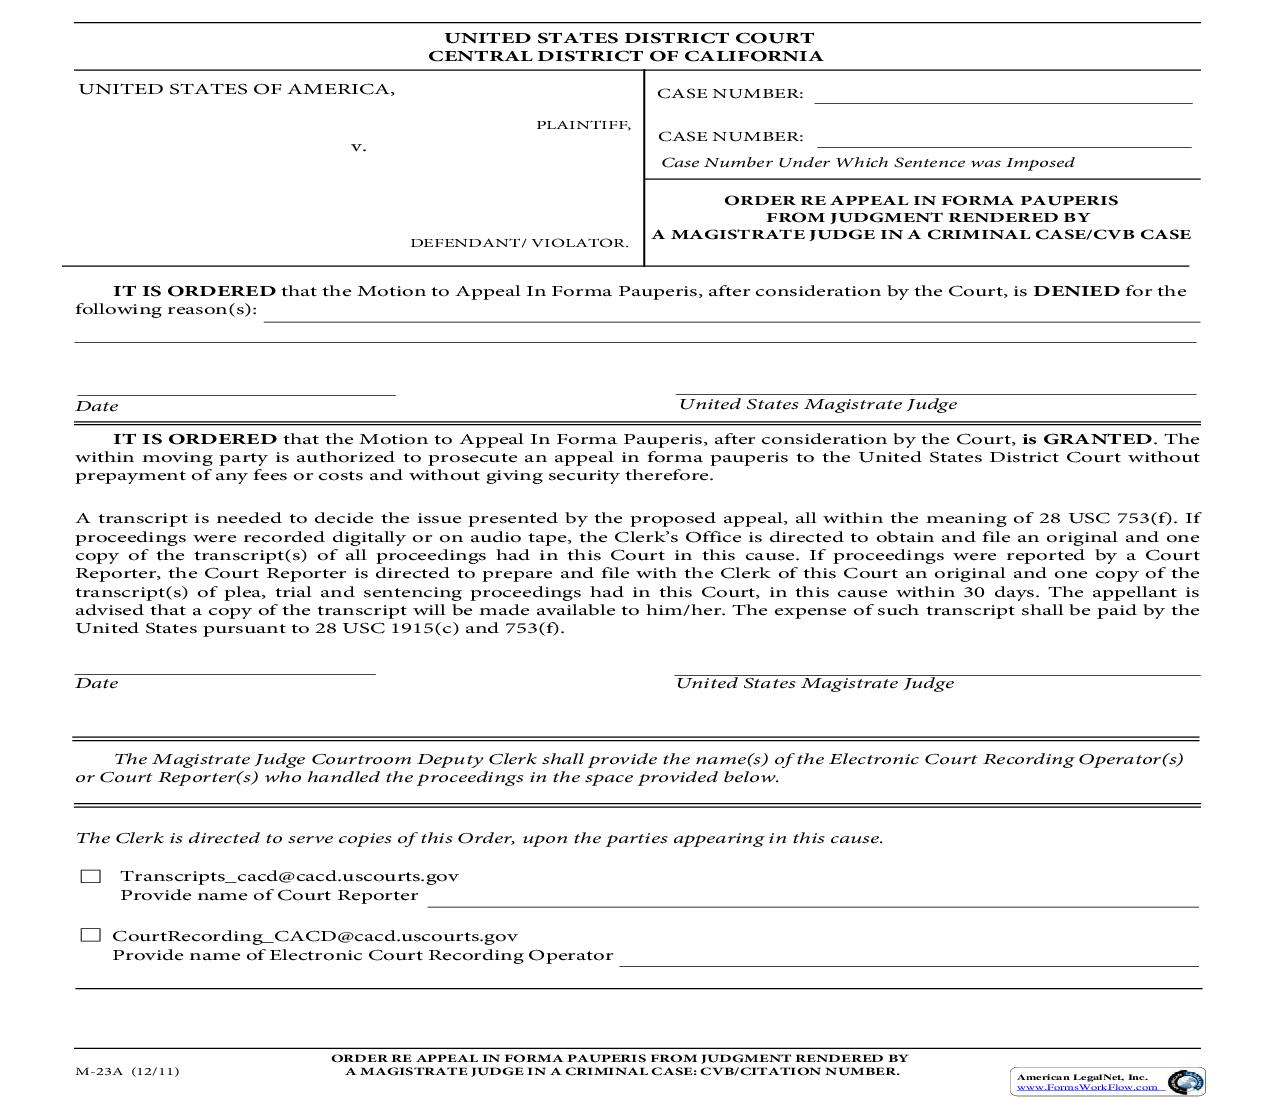 Order Re Appeal In Forma Pauperis From Judgment Rendered {M-23A} | Pdf Fpdf Doc Docx | California